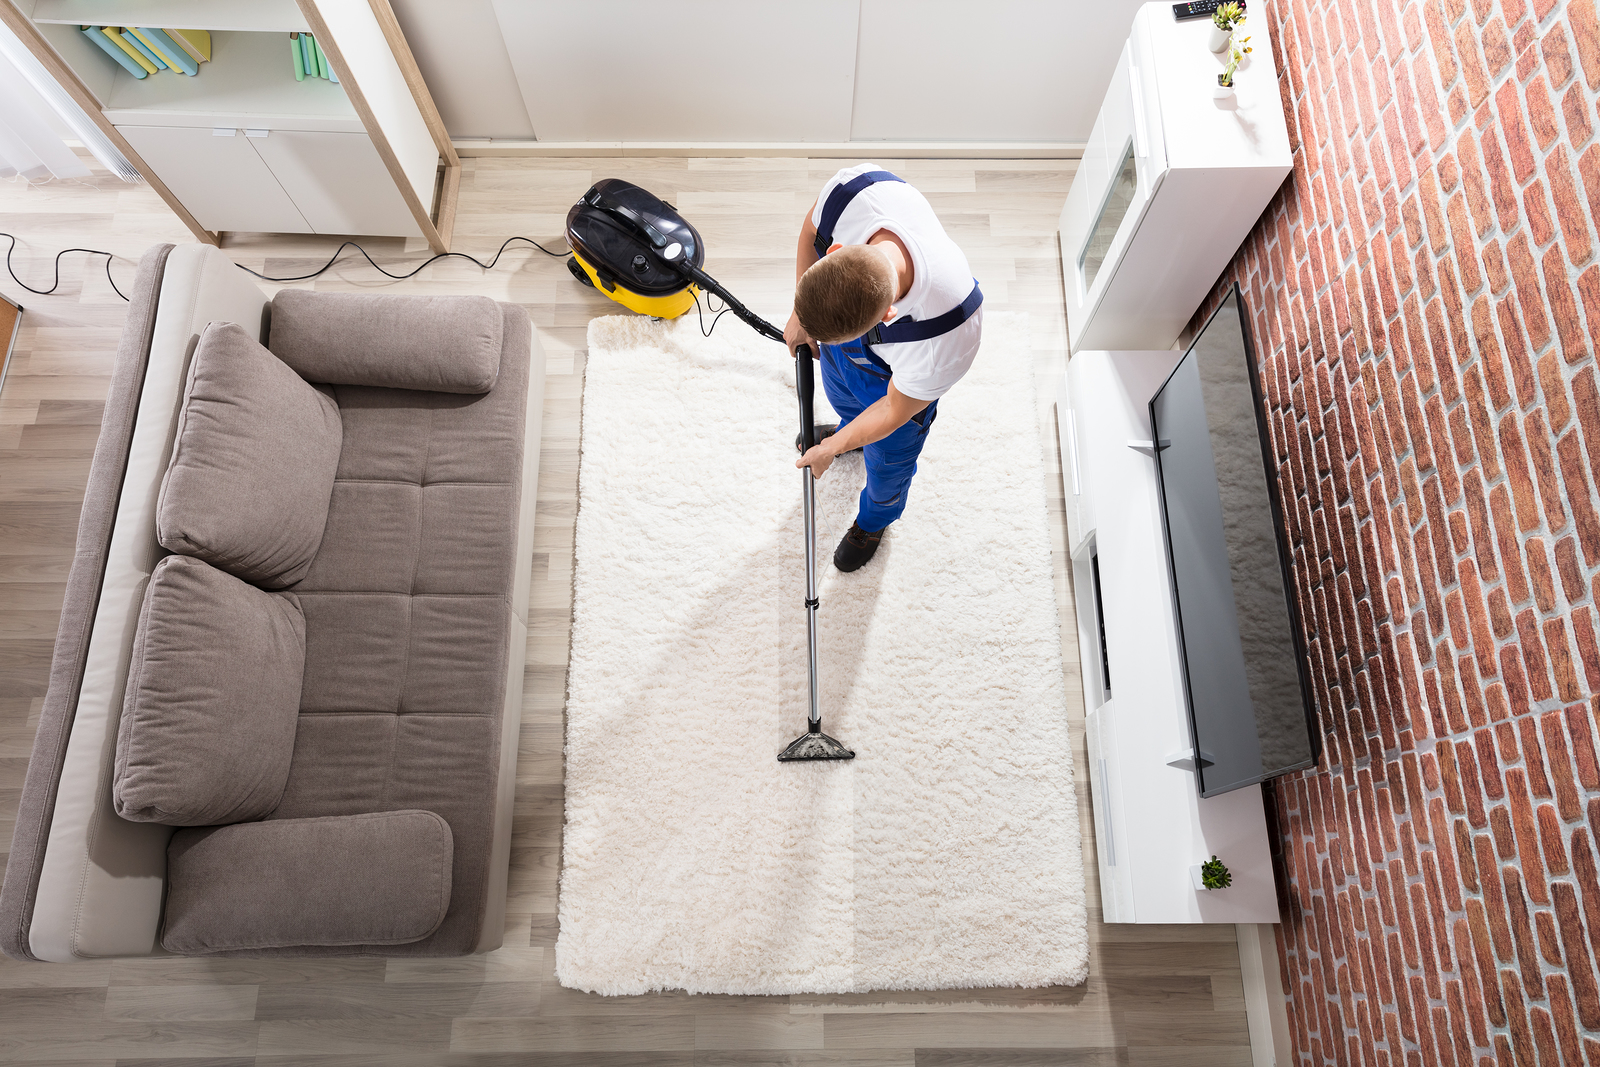 Three Effective Ways to Remove Pathogens from Carpet